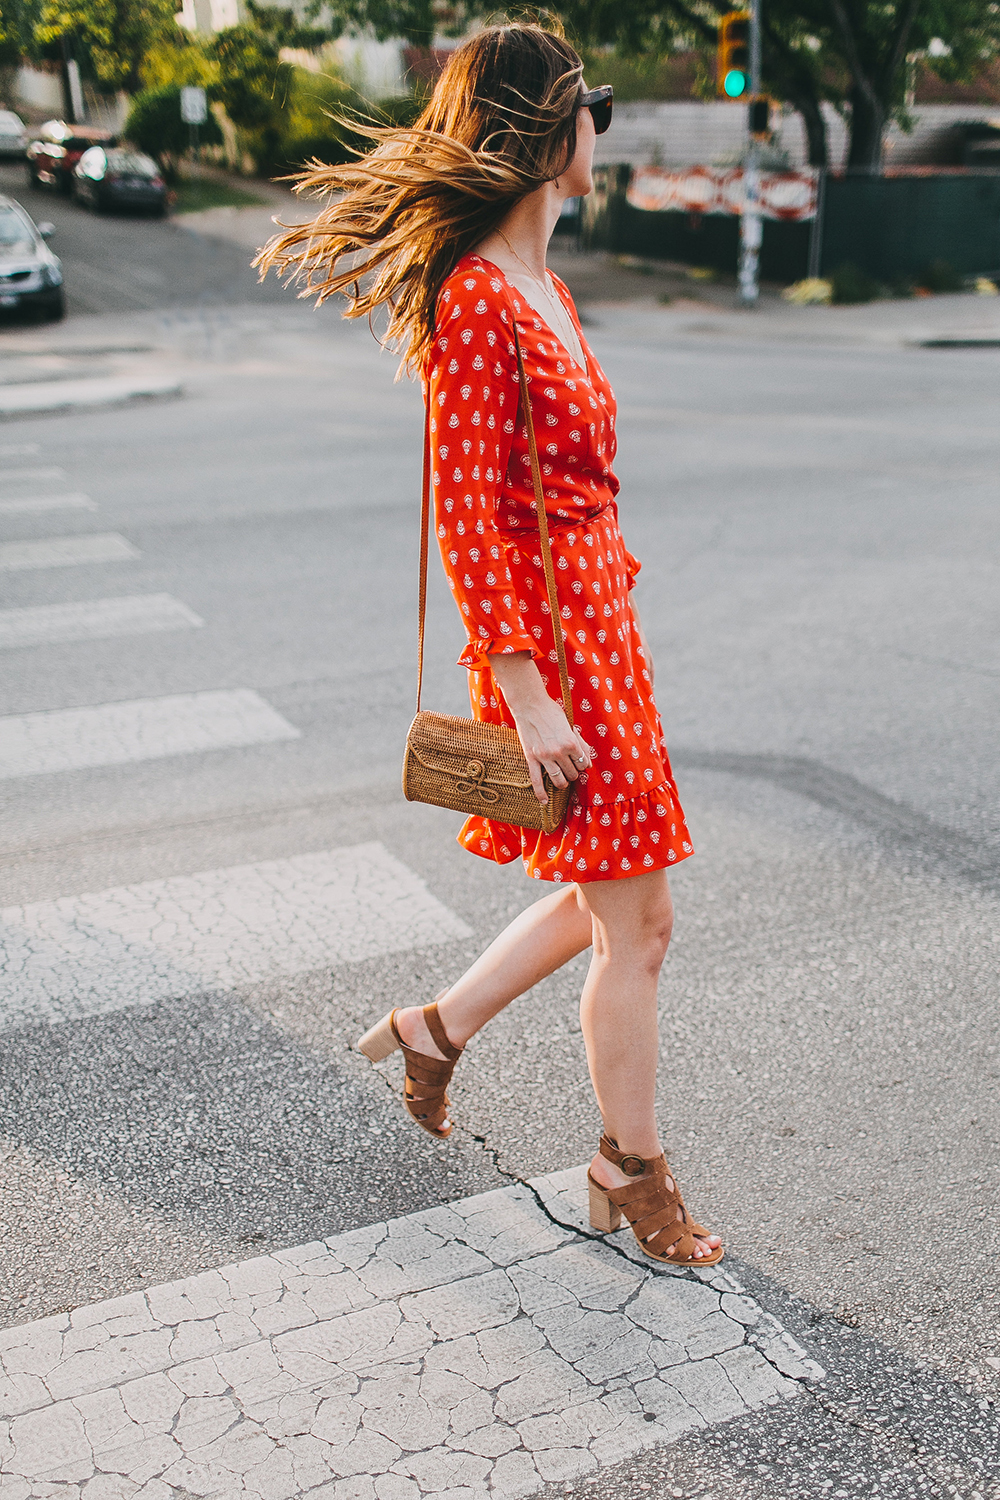 livvyland-blog-olivia-watson-sezane-wrap-dress-date-night-work-outfit-idea-poppy-red-olivia-watson-austin-texas-fashion-lifestyle-blogger-1